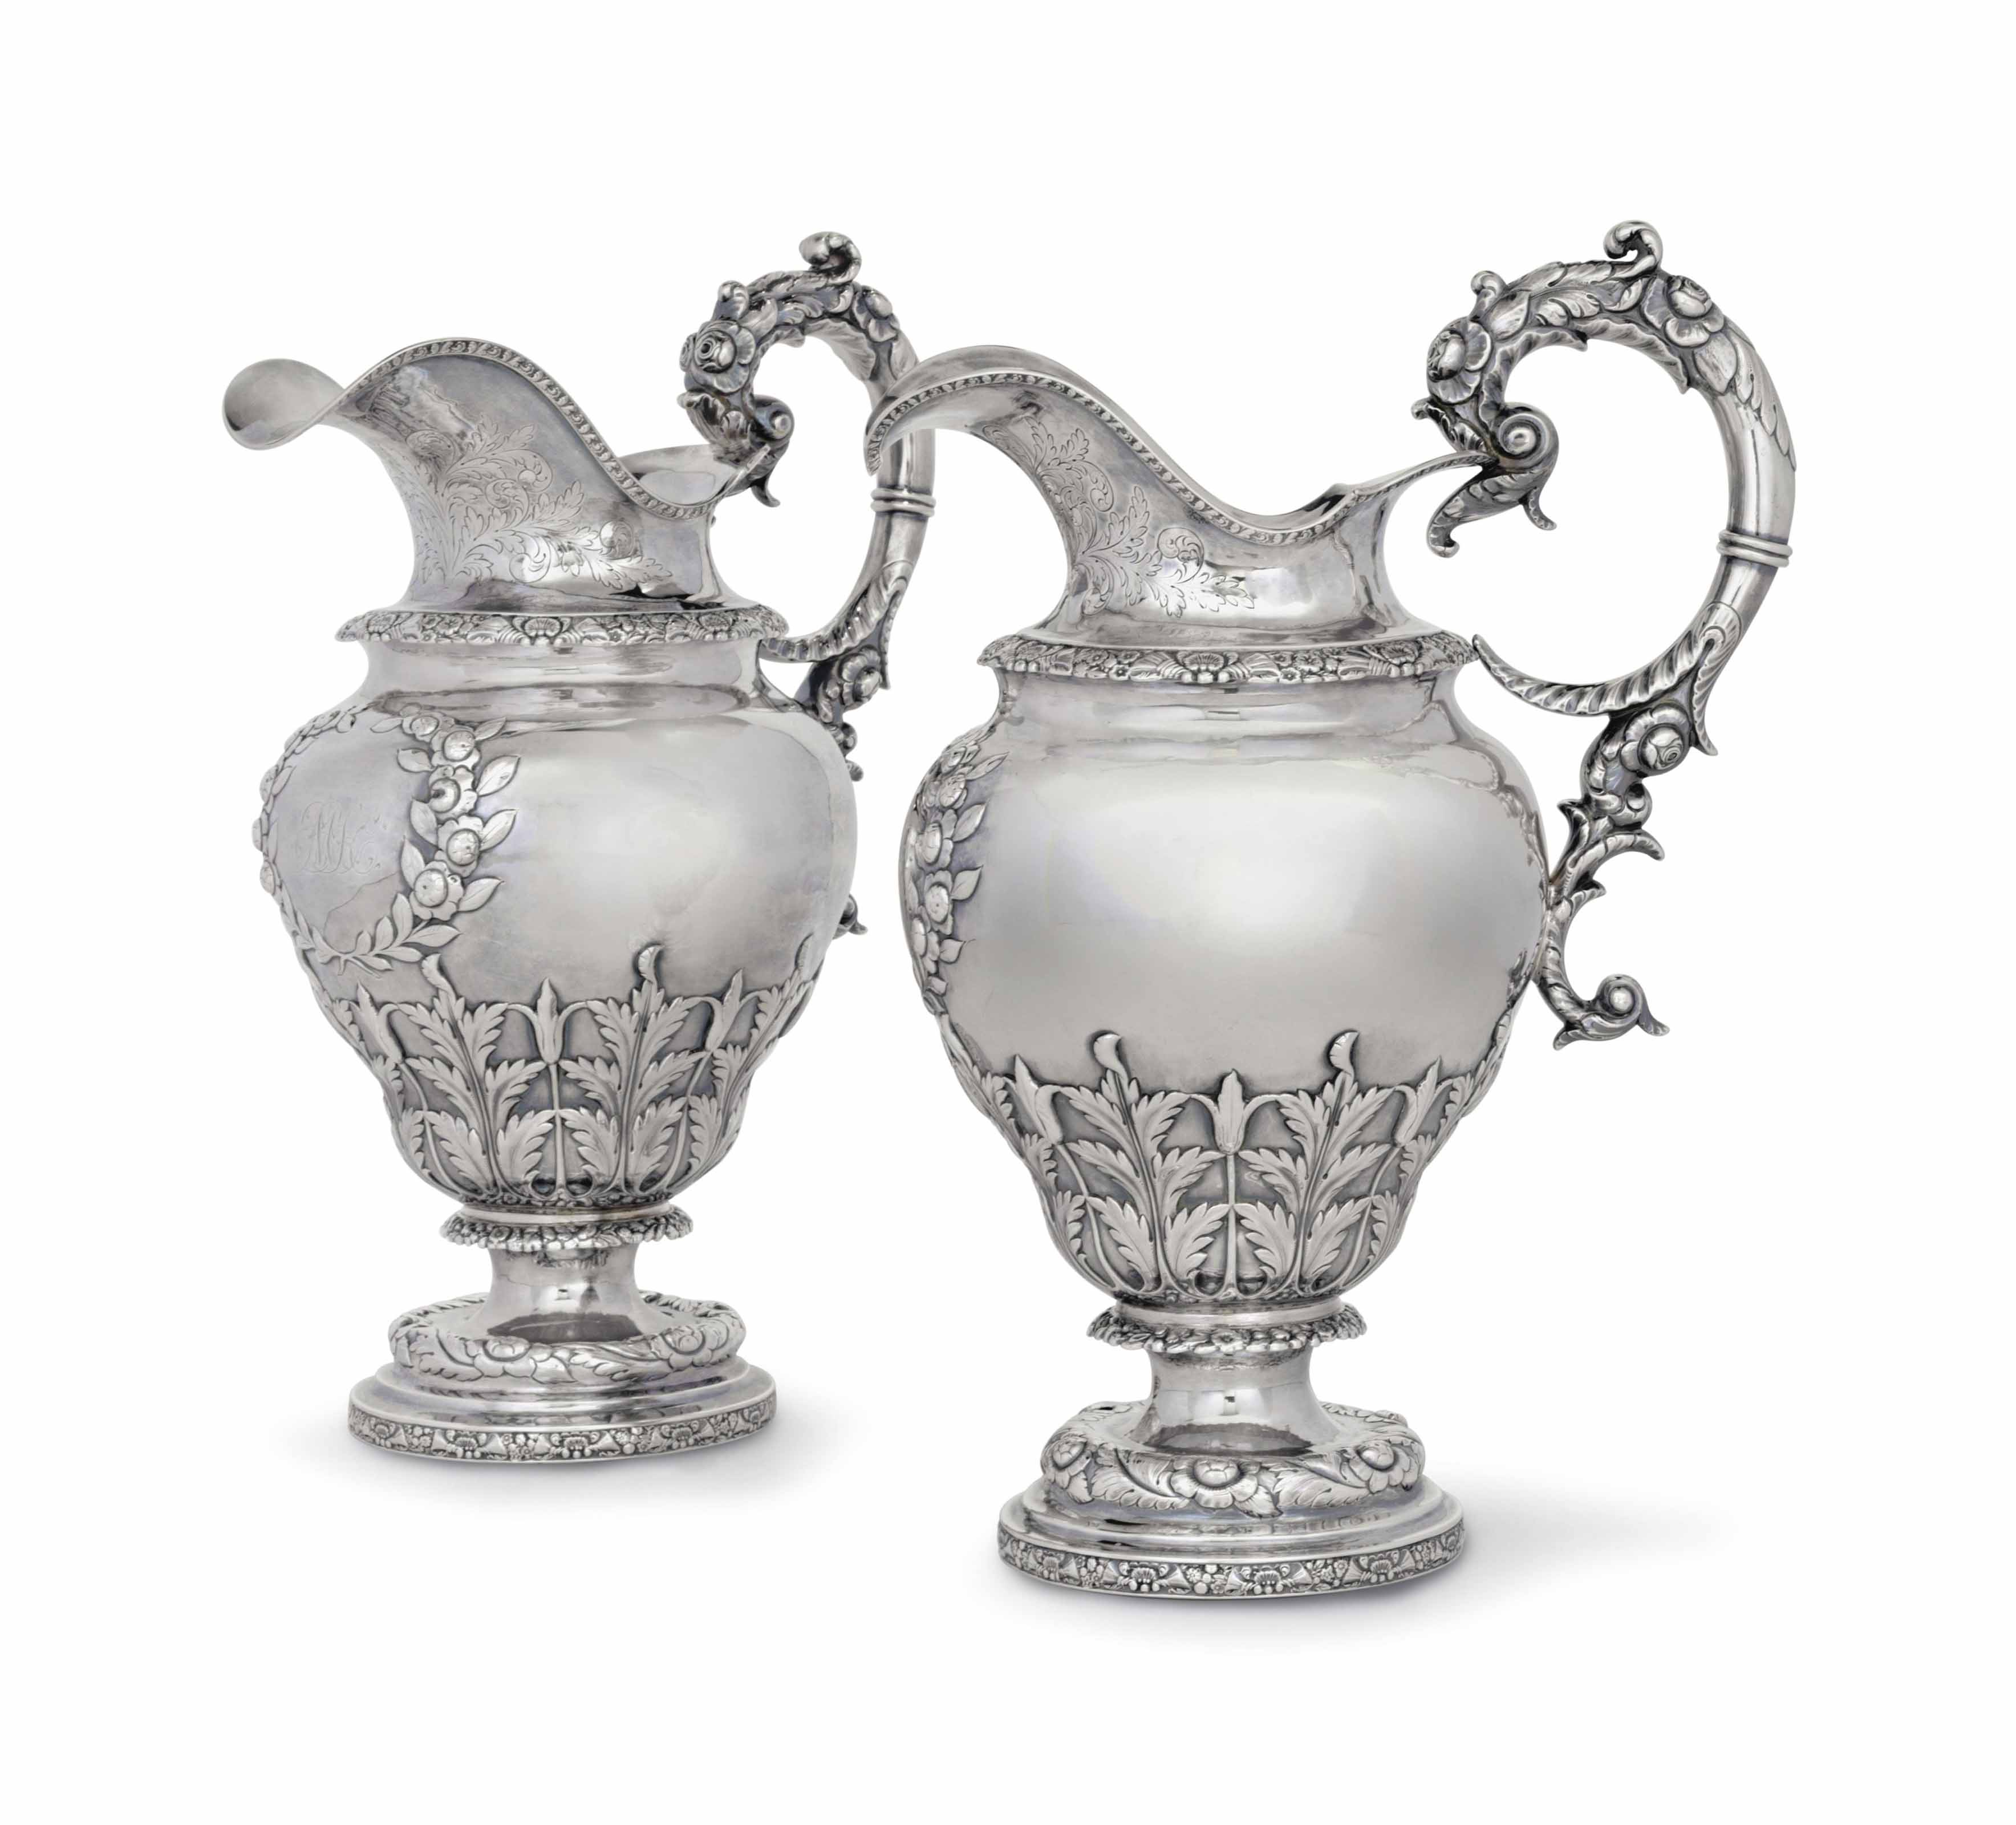 A PAIR OF SILVER WATER PITCHERS